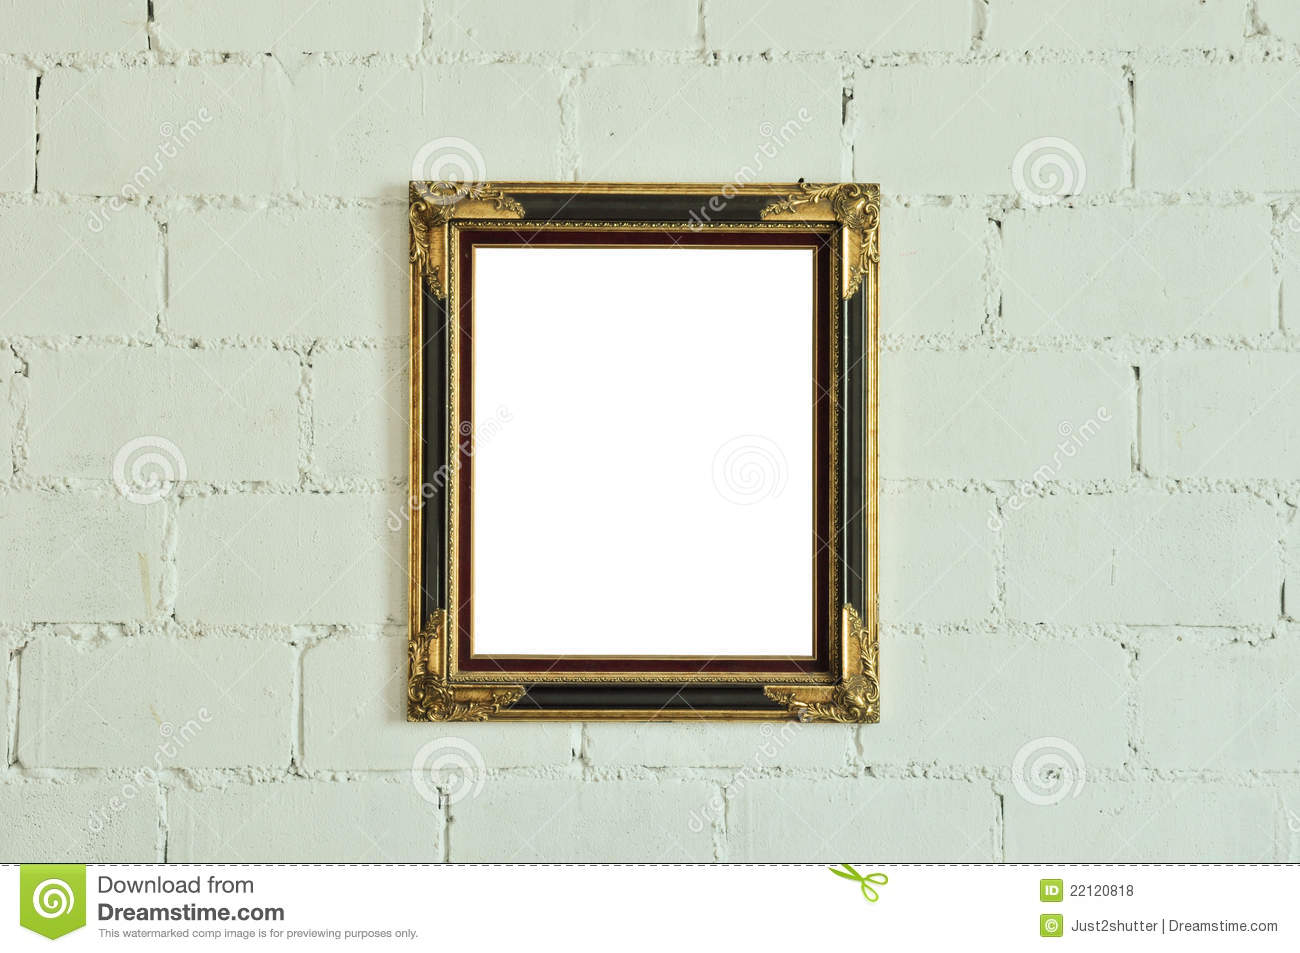 Vintage gold picture frame on white wall royalty free - White wall picture frames ...